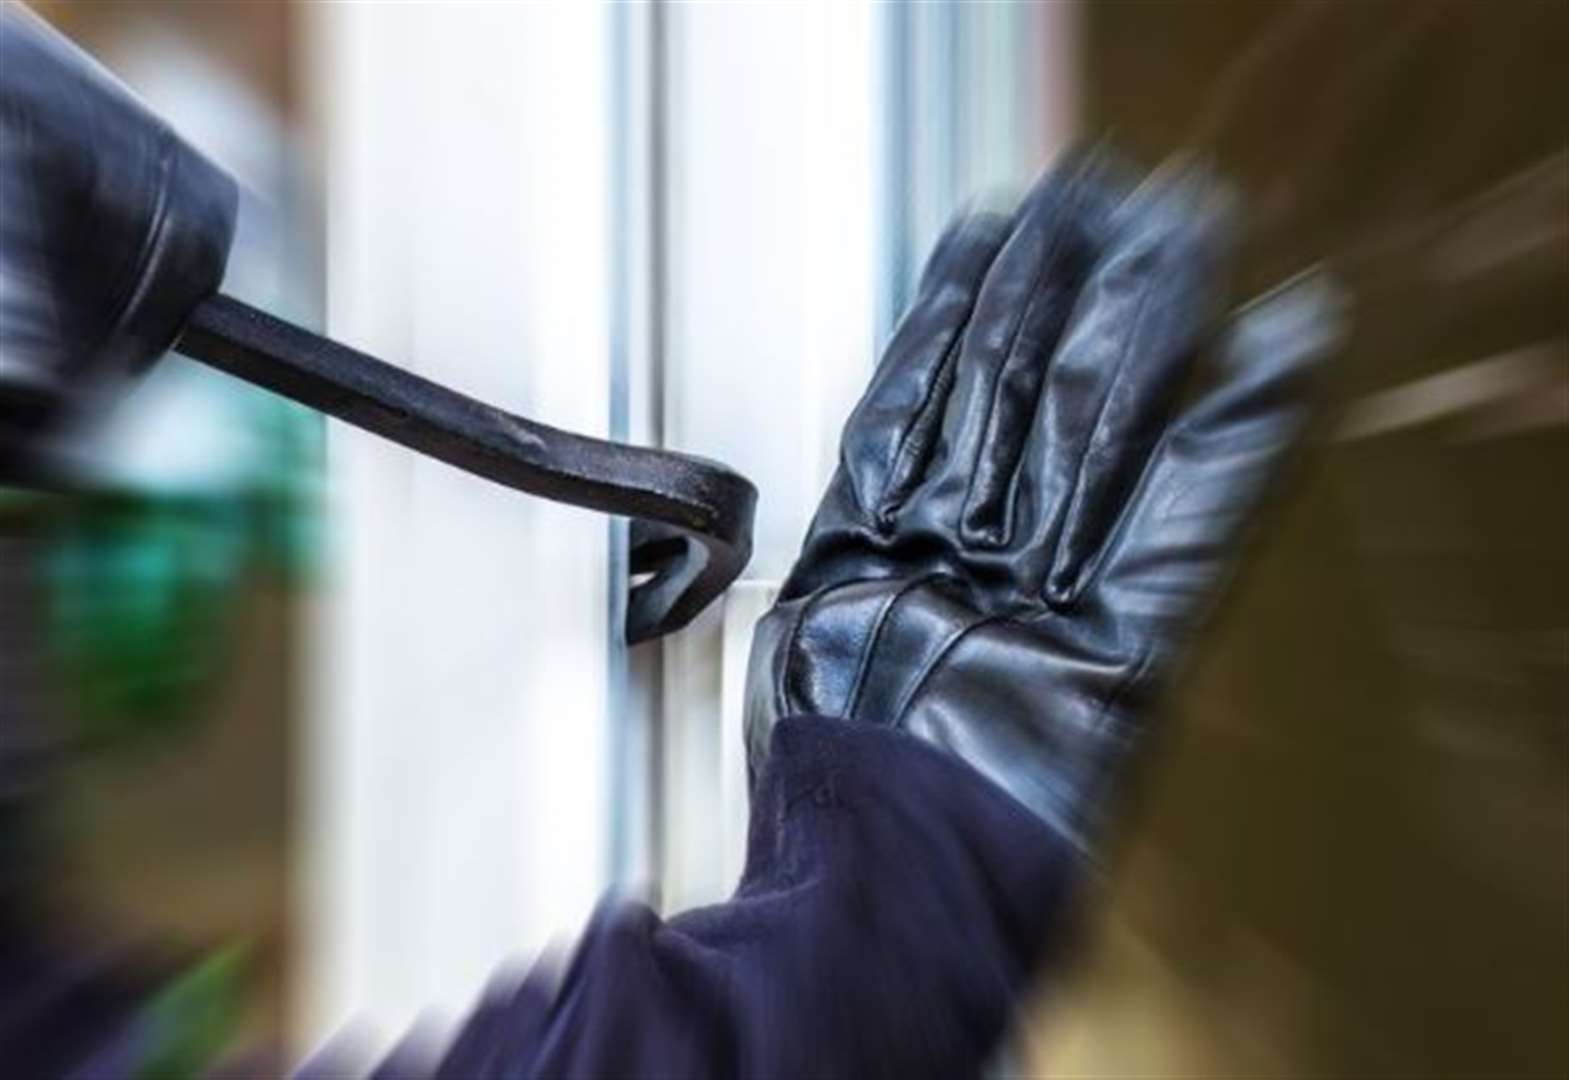 2019 police data reveals hundreds of unsolved burglaries